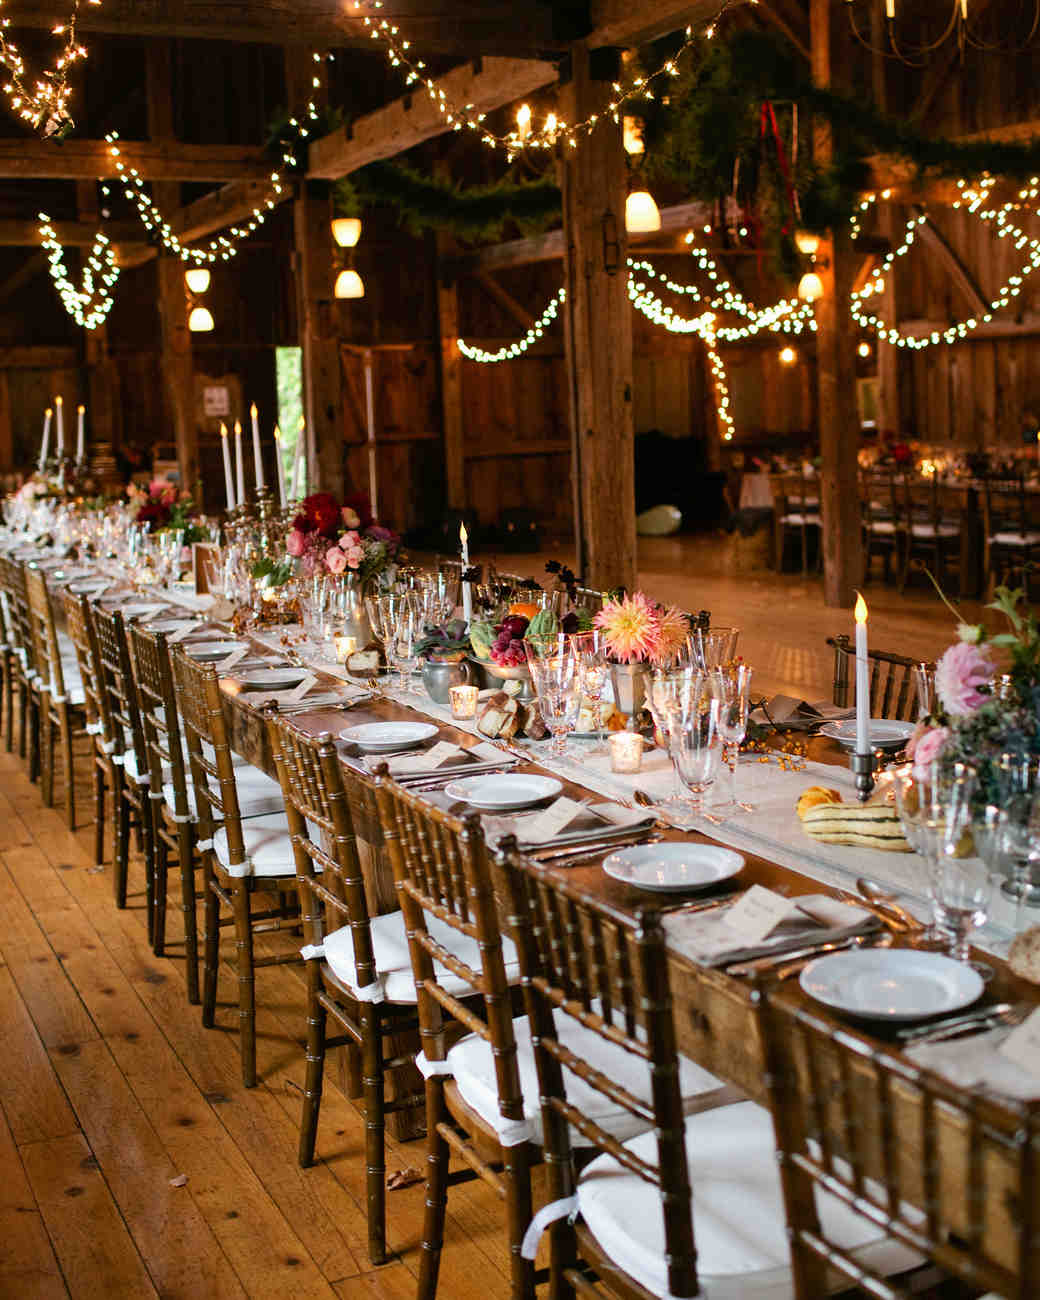 Barn Weddings: A Rustic Fall Barn Wedding In Maine